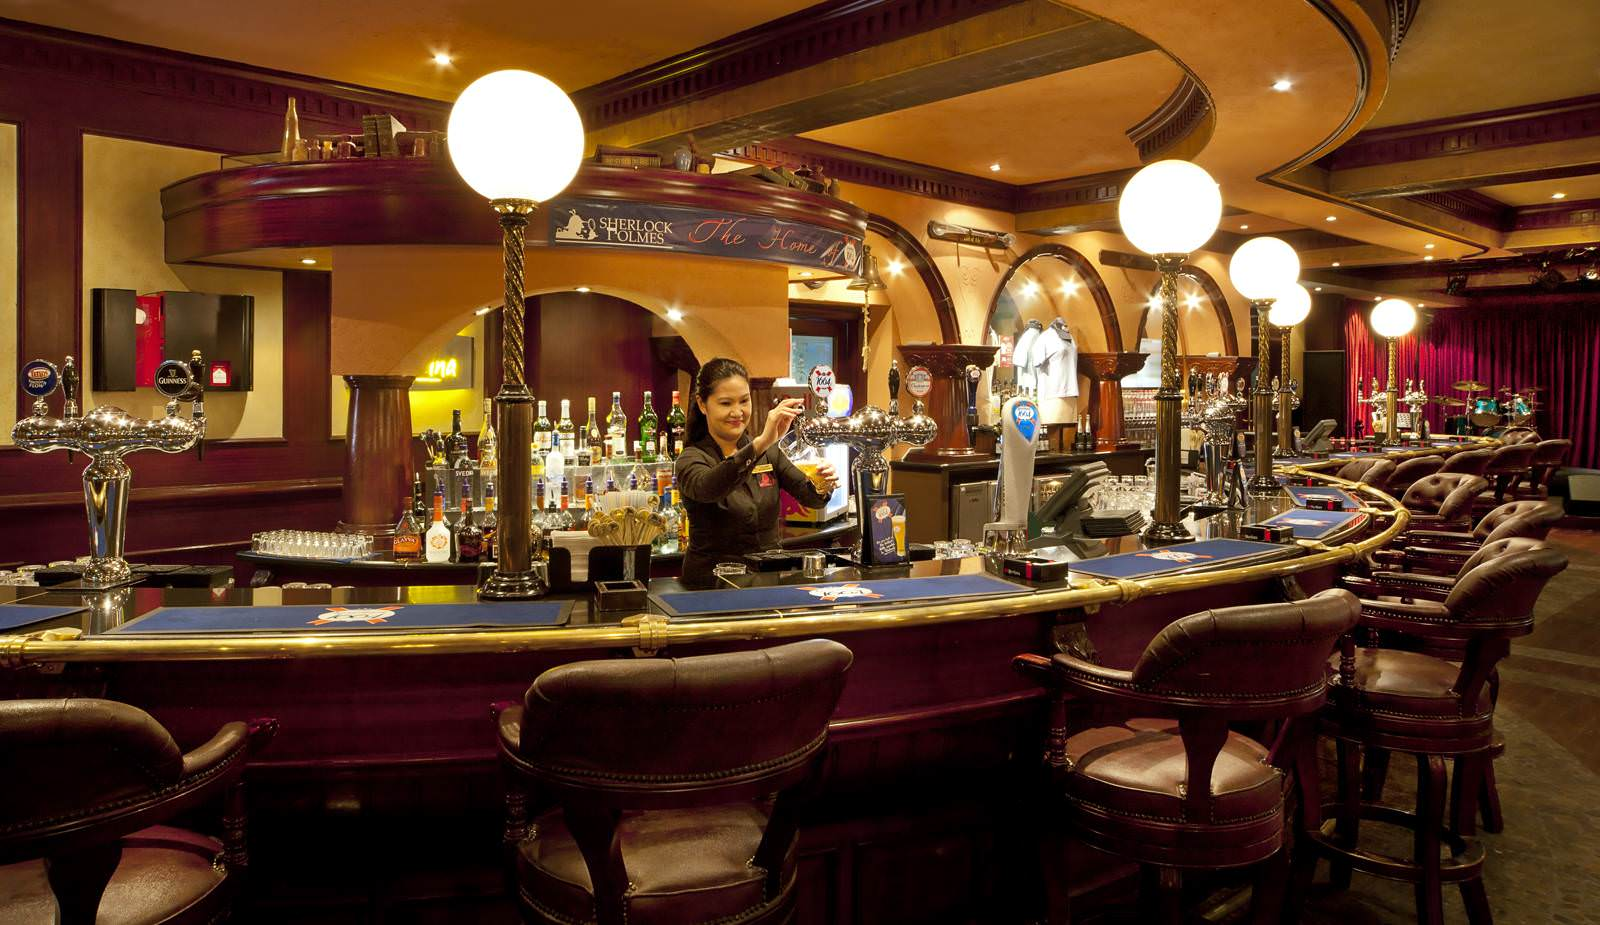 gulf hotel bahrain best restaurants and dining english pub sherlock holmes